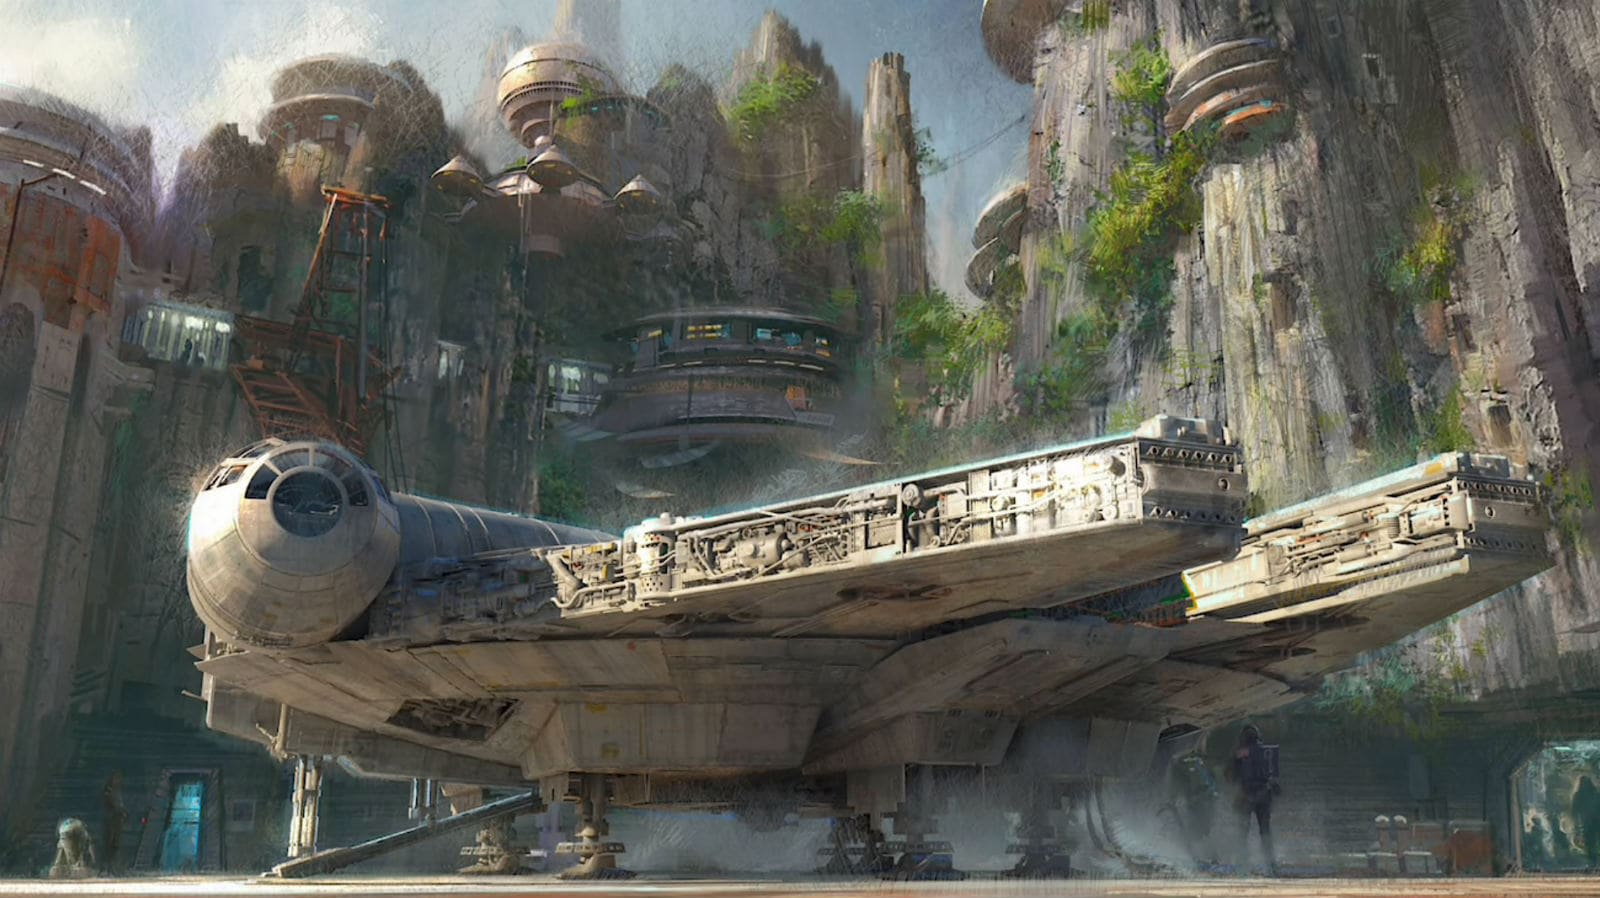 Disney's 'Star Wars' theme park trailer takes you inside its rides